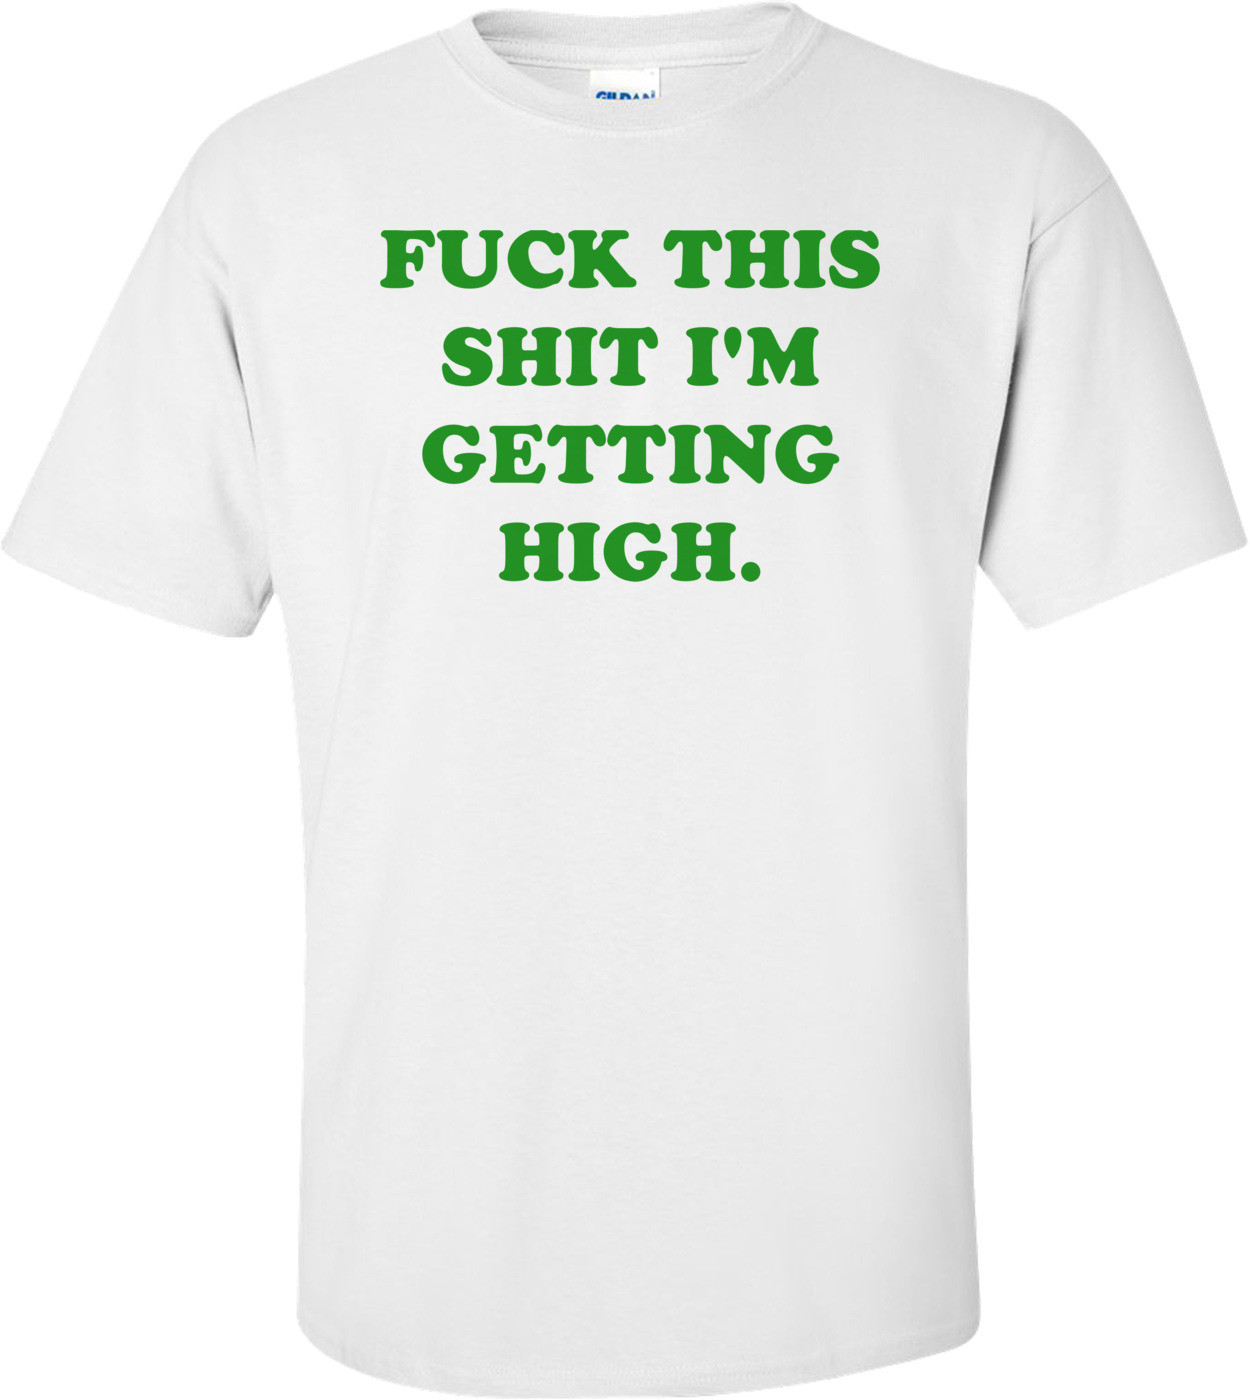 FUCK THIS SHIT I'M GETTING HIGH. Shirt